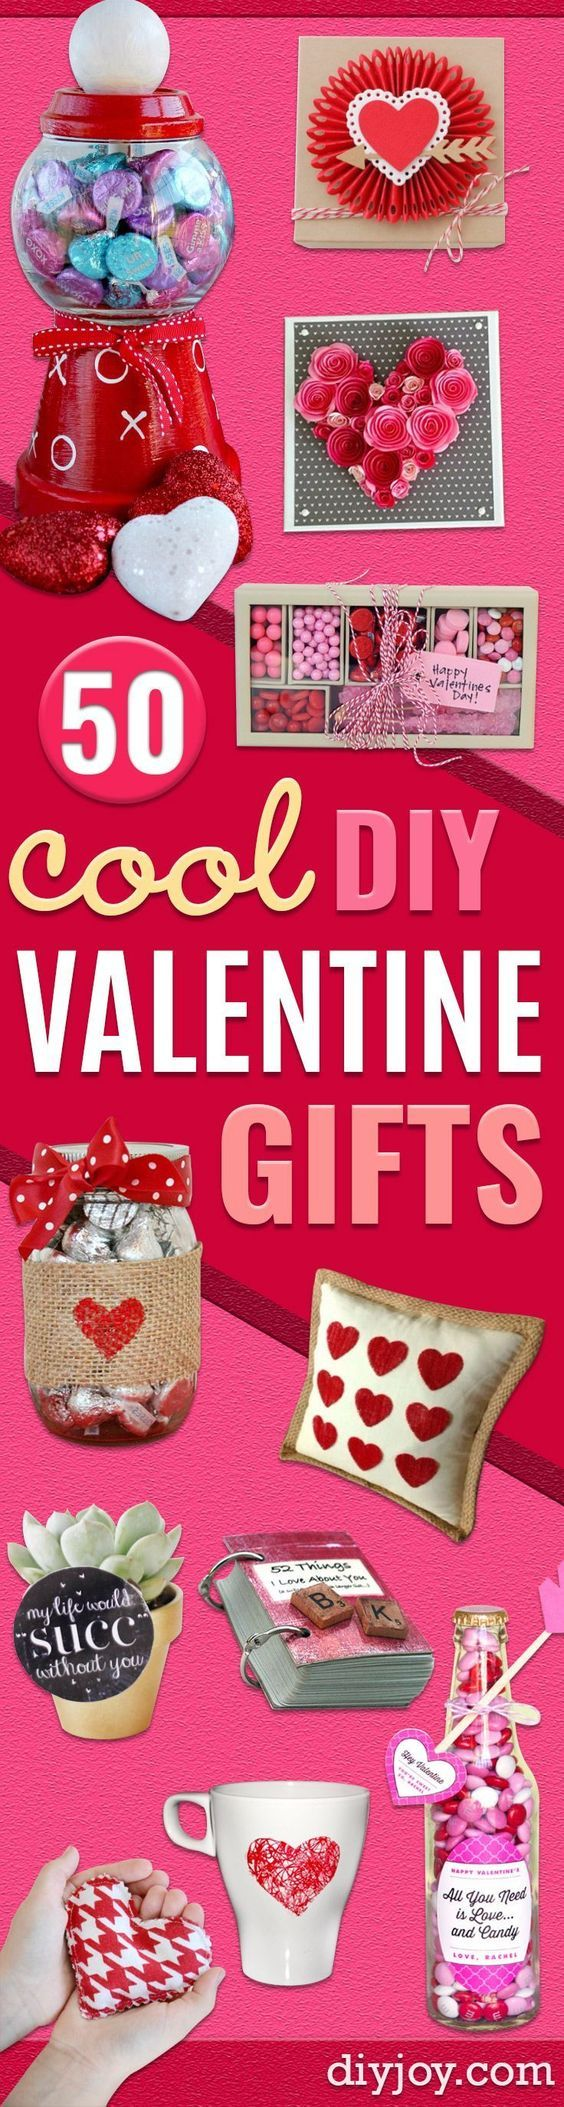 Best DIY Valentines Day Gifts - Cute Mason Jar Valentines Day Gifts and Crafts for Him and Her   Boyfriend, Girlfriend, Mom and Dad, Husband or Wife, Friends - Easy DIY Ideas for Valentines Day for Homemade Gift Giving and Room Decor   Creative Home Decor and Craft Projects for Teens, Teenagers, Kids and Adults diyjoy.com/...